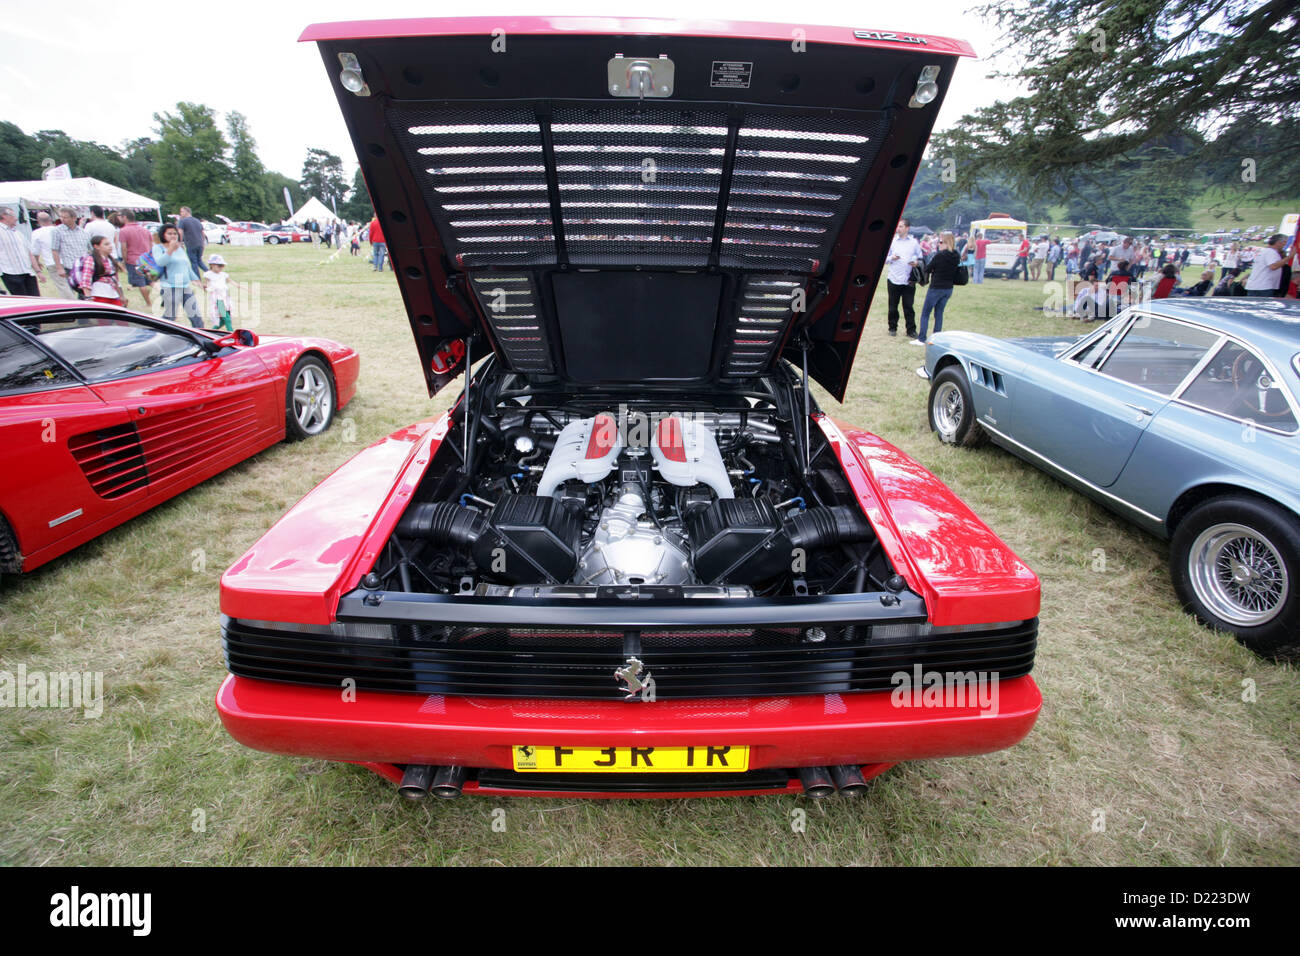 Red ferrari testarossa stock photos red ferrari testarossa stock a ferrari 512 tr testarossa showing the 49 litre v12 engine in all its vanachro Gallery